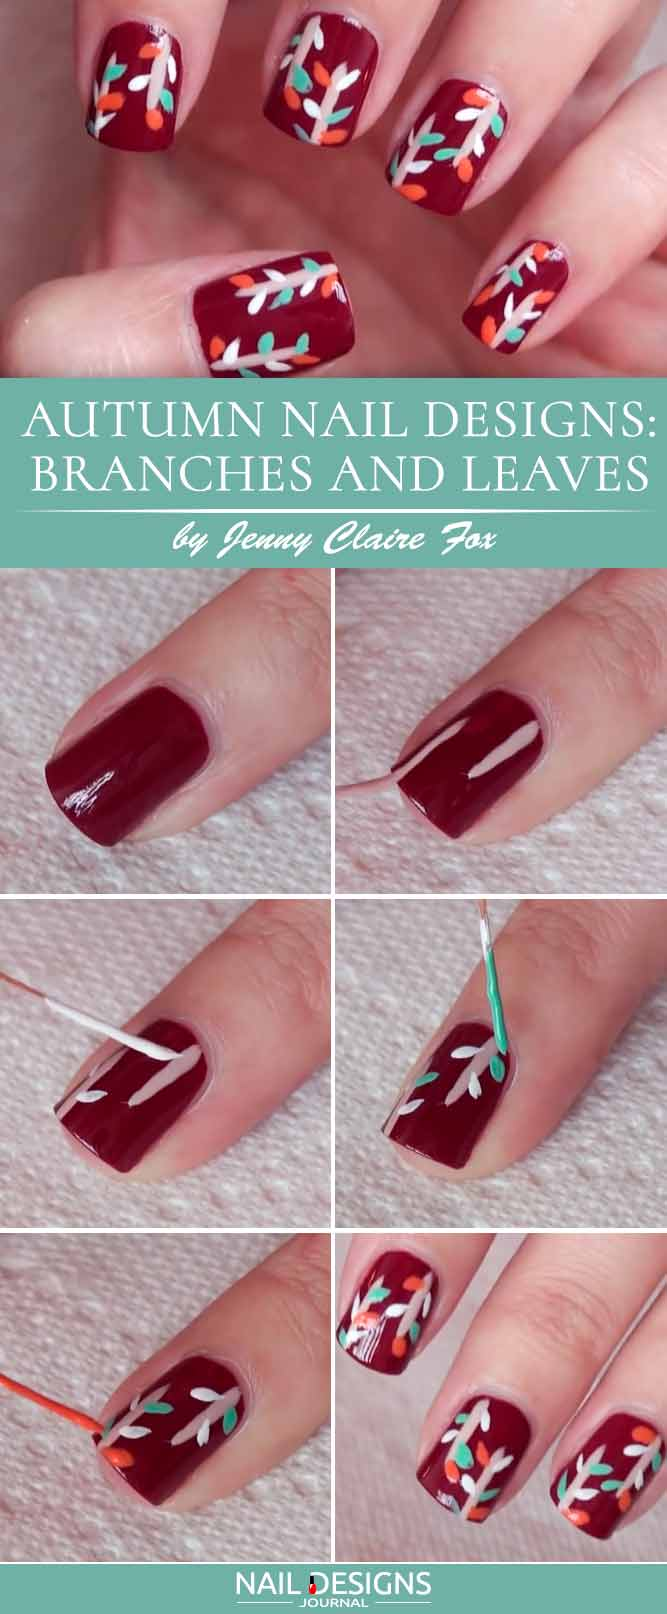 Autumn Nail Designs Branches And Leaves